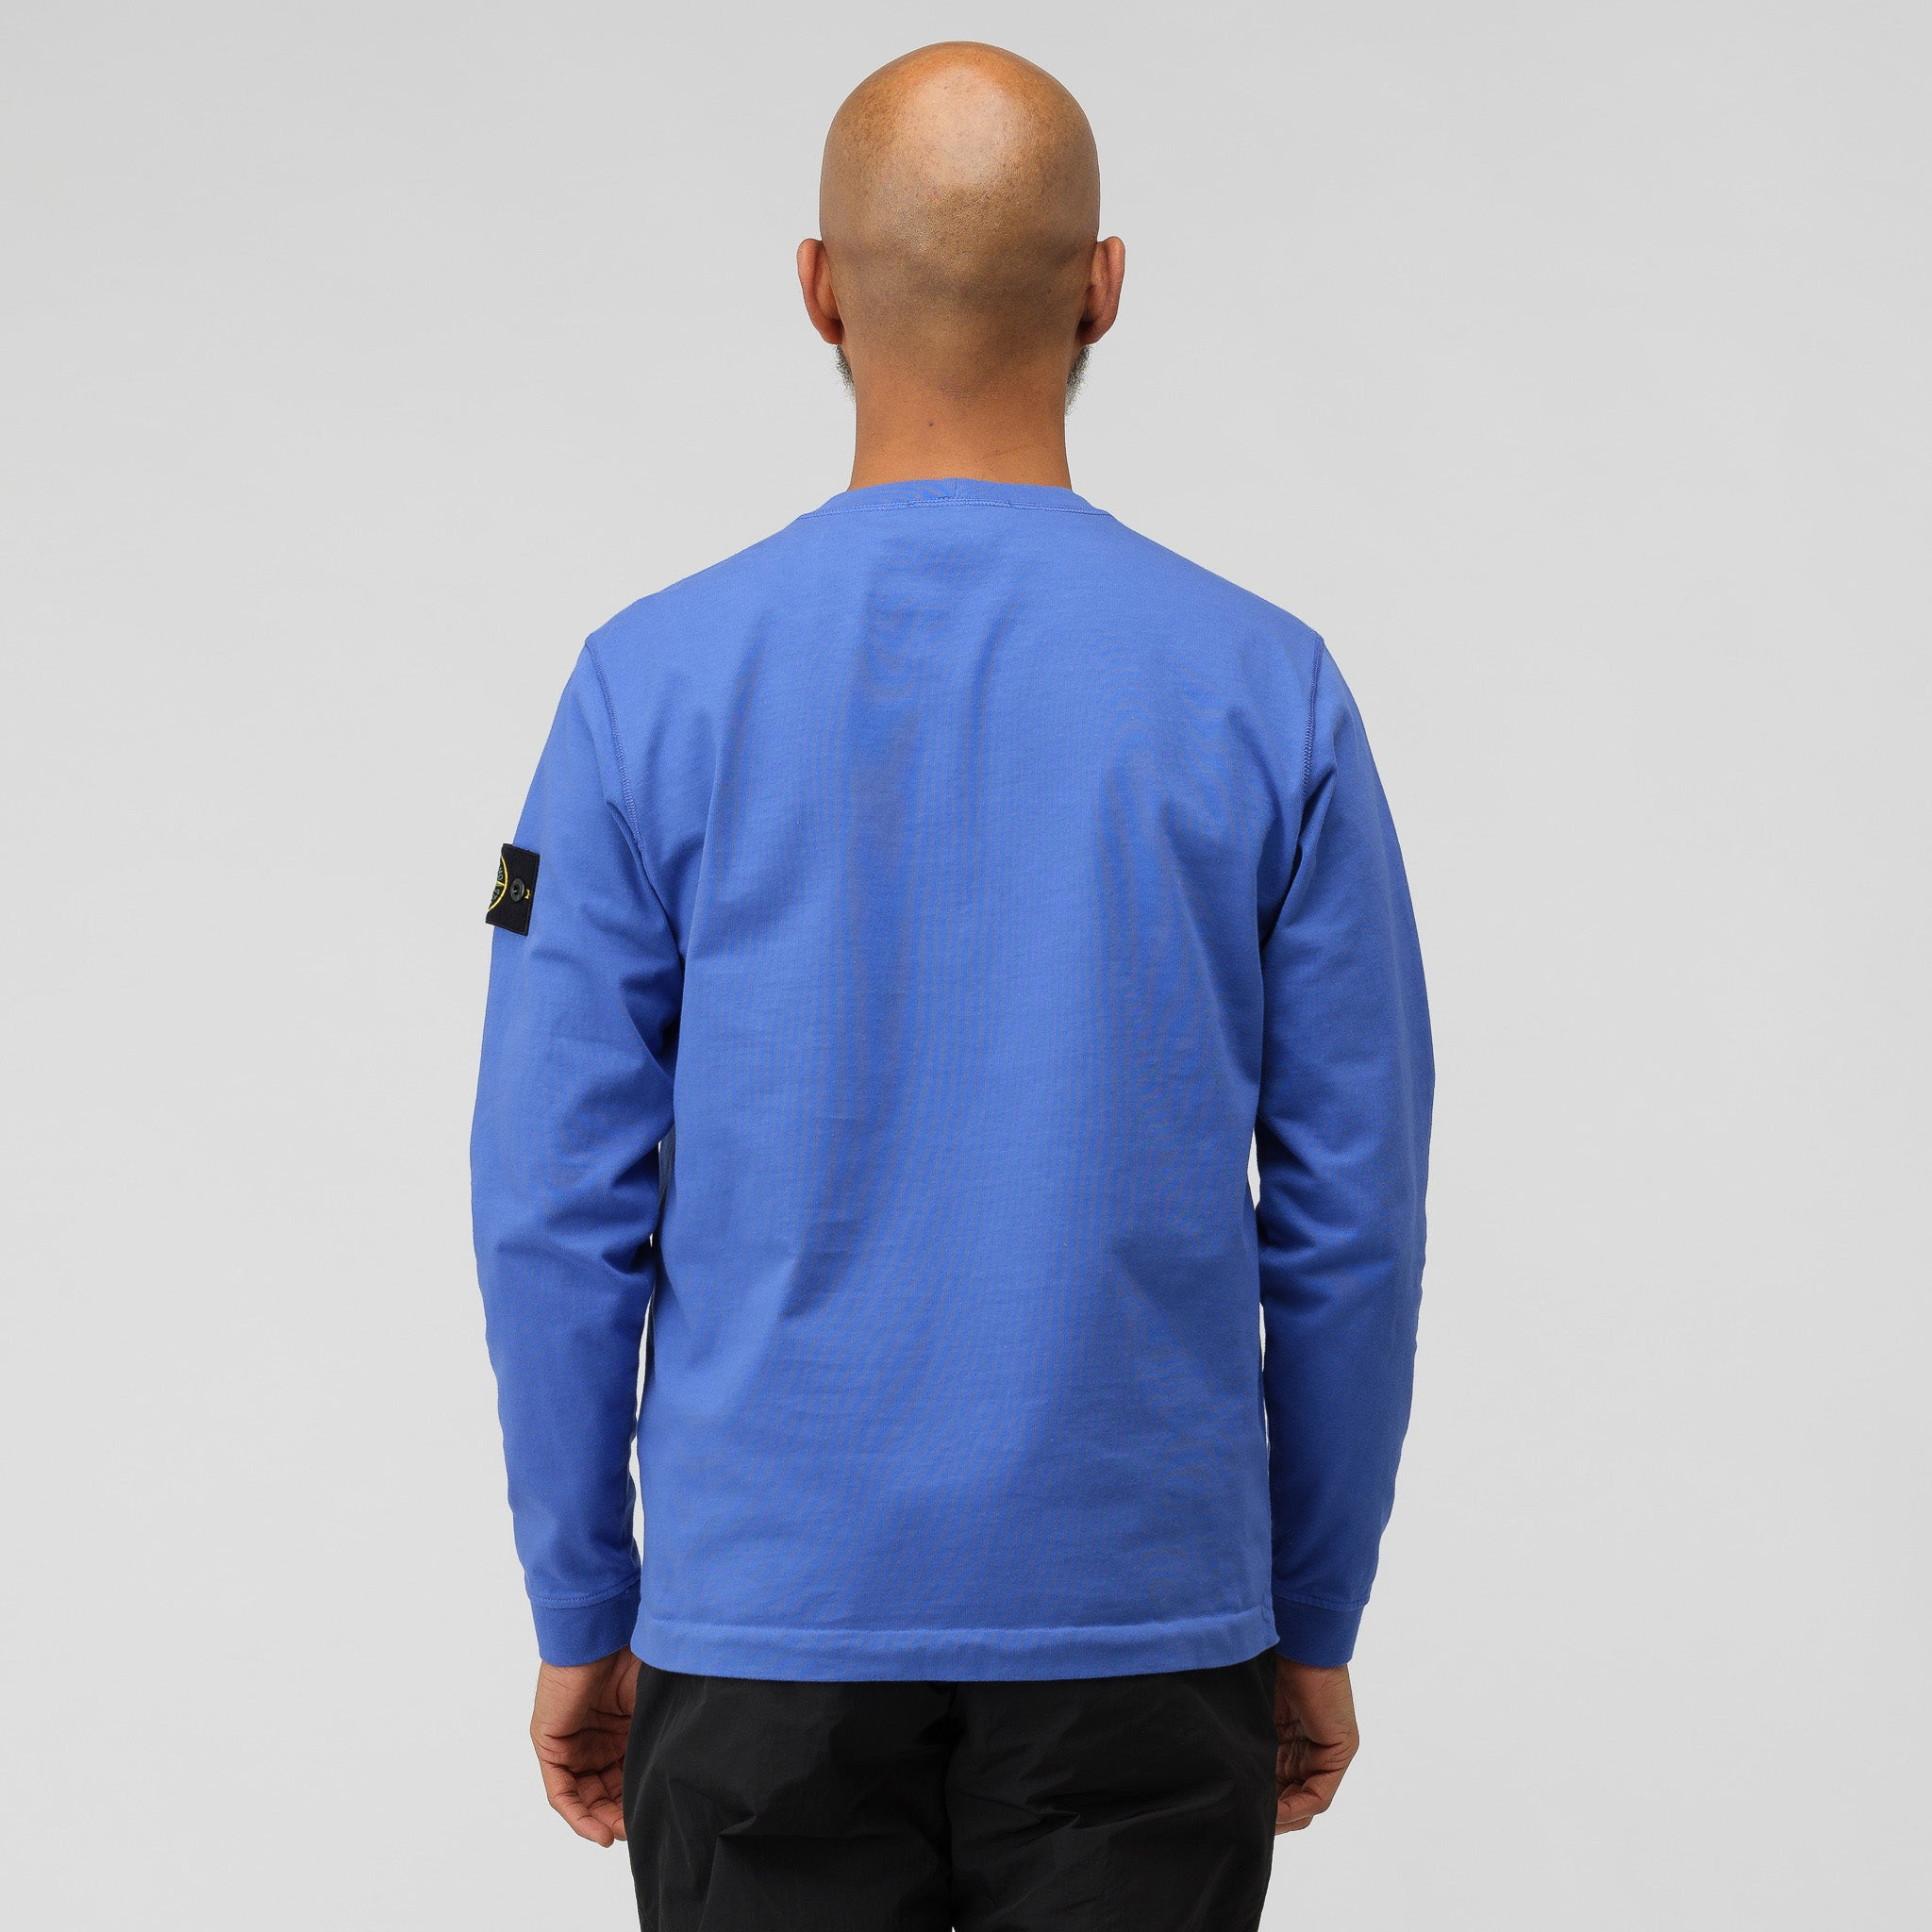 62150 T-Shirt in Periwinkle